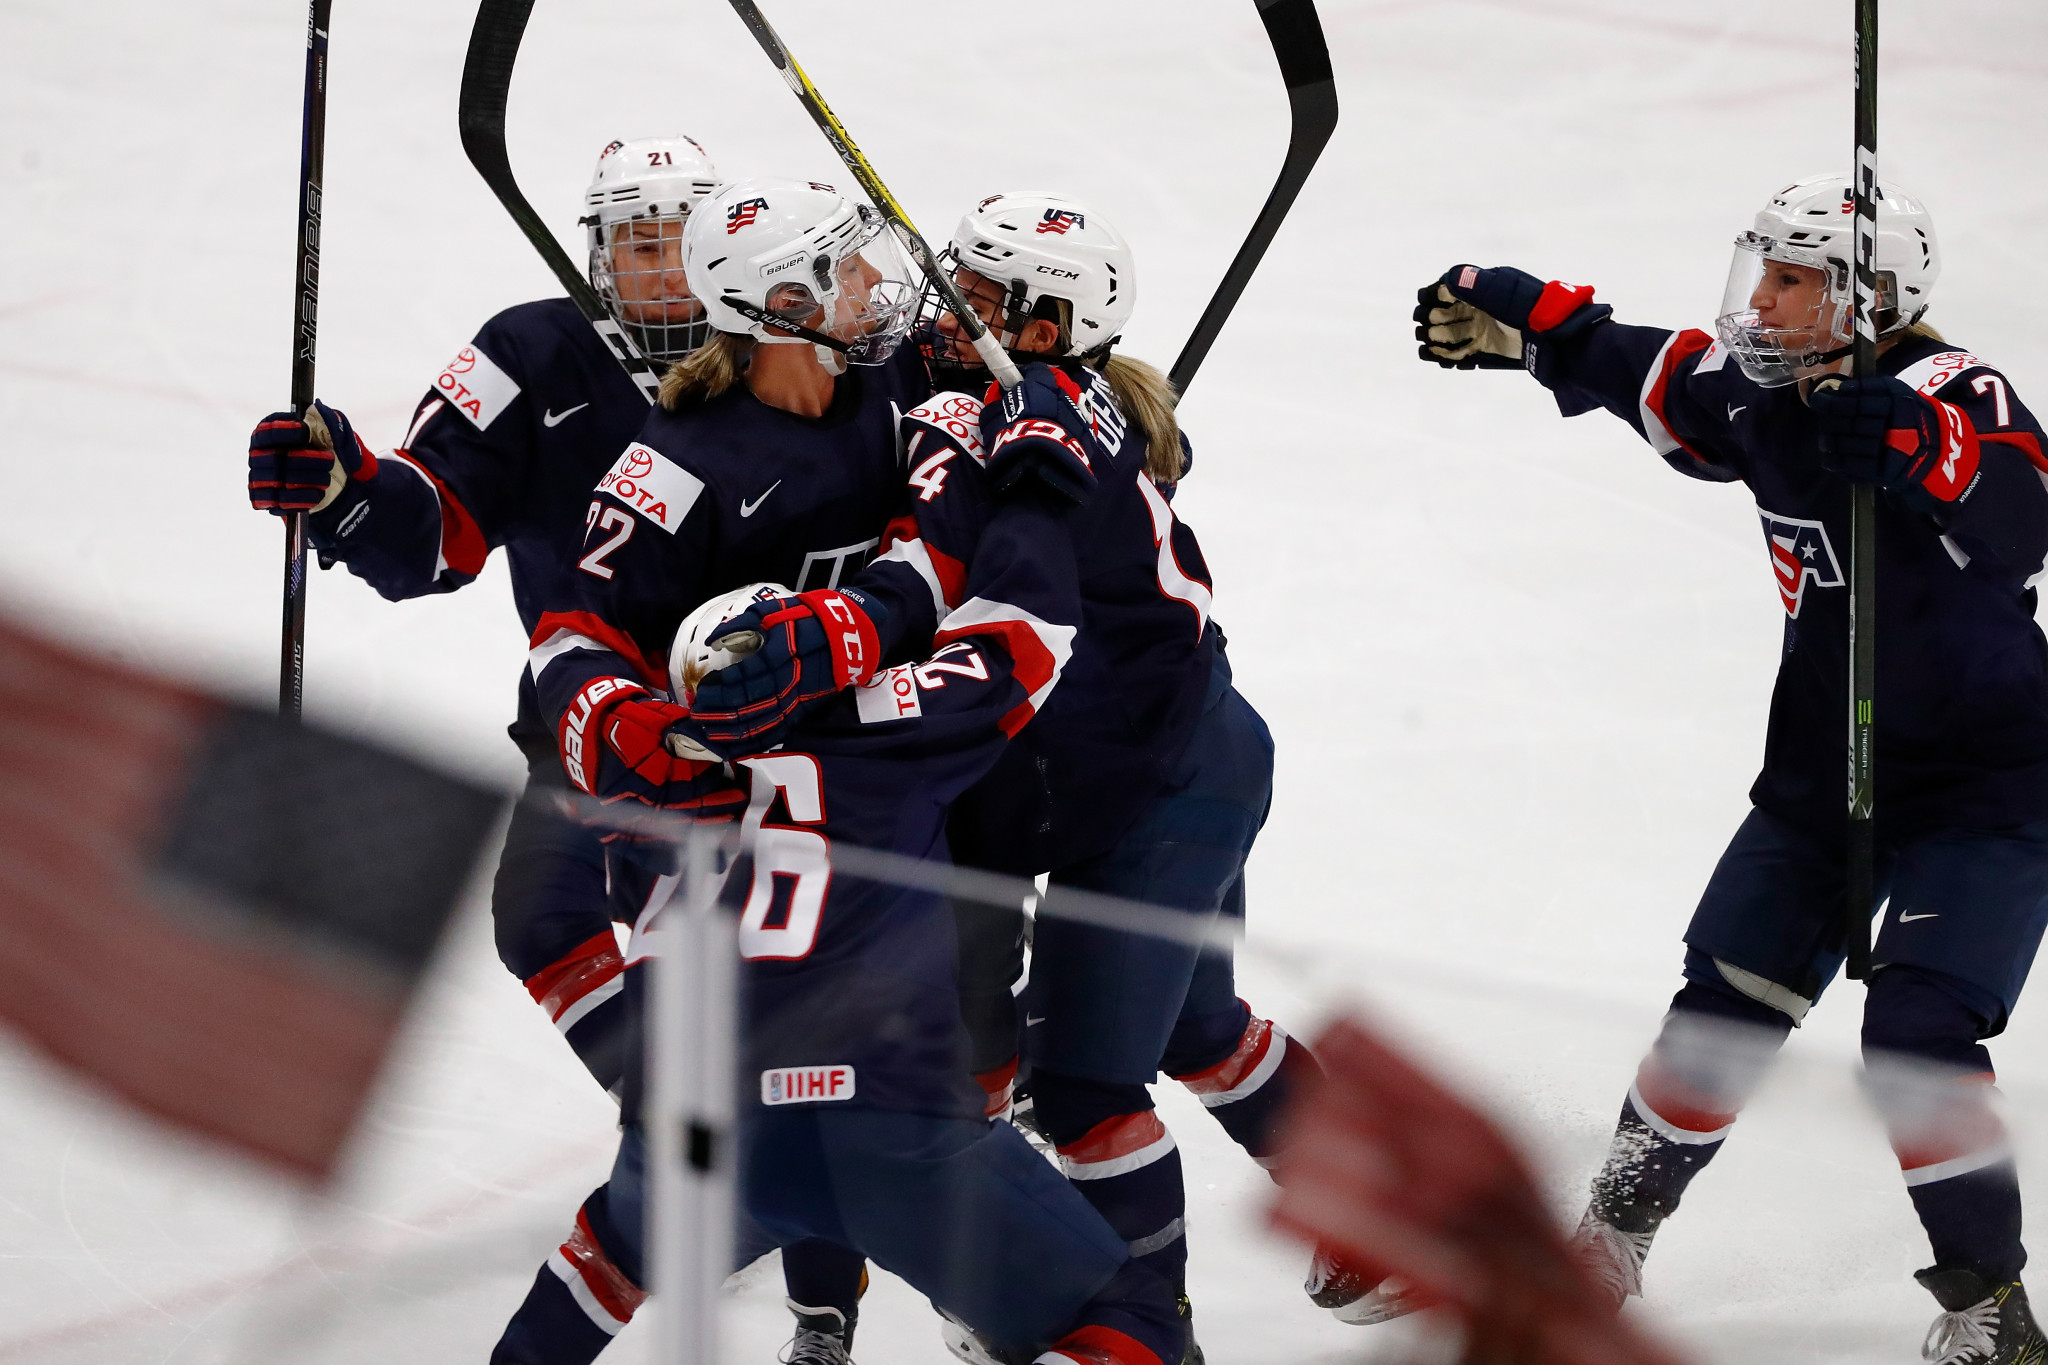 USA Hockey announce tour schedule as build-up continues to Pyeongchang 2018